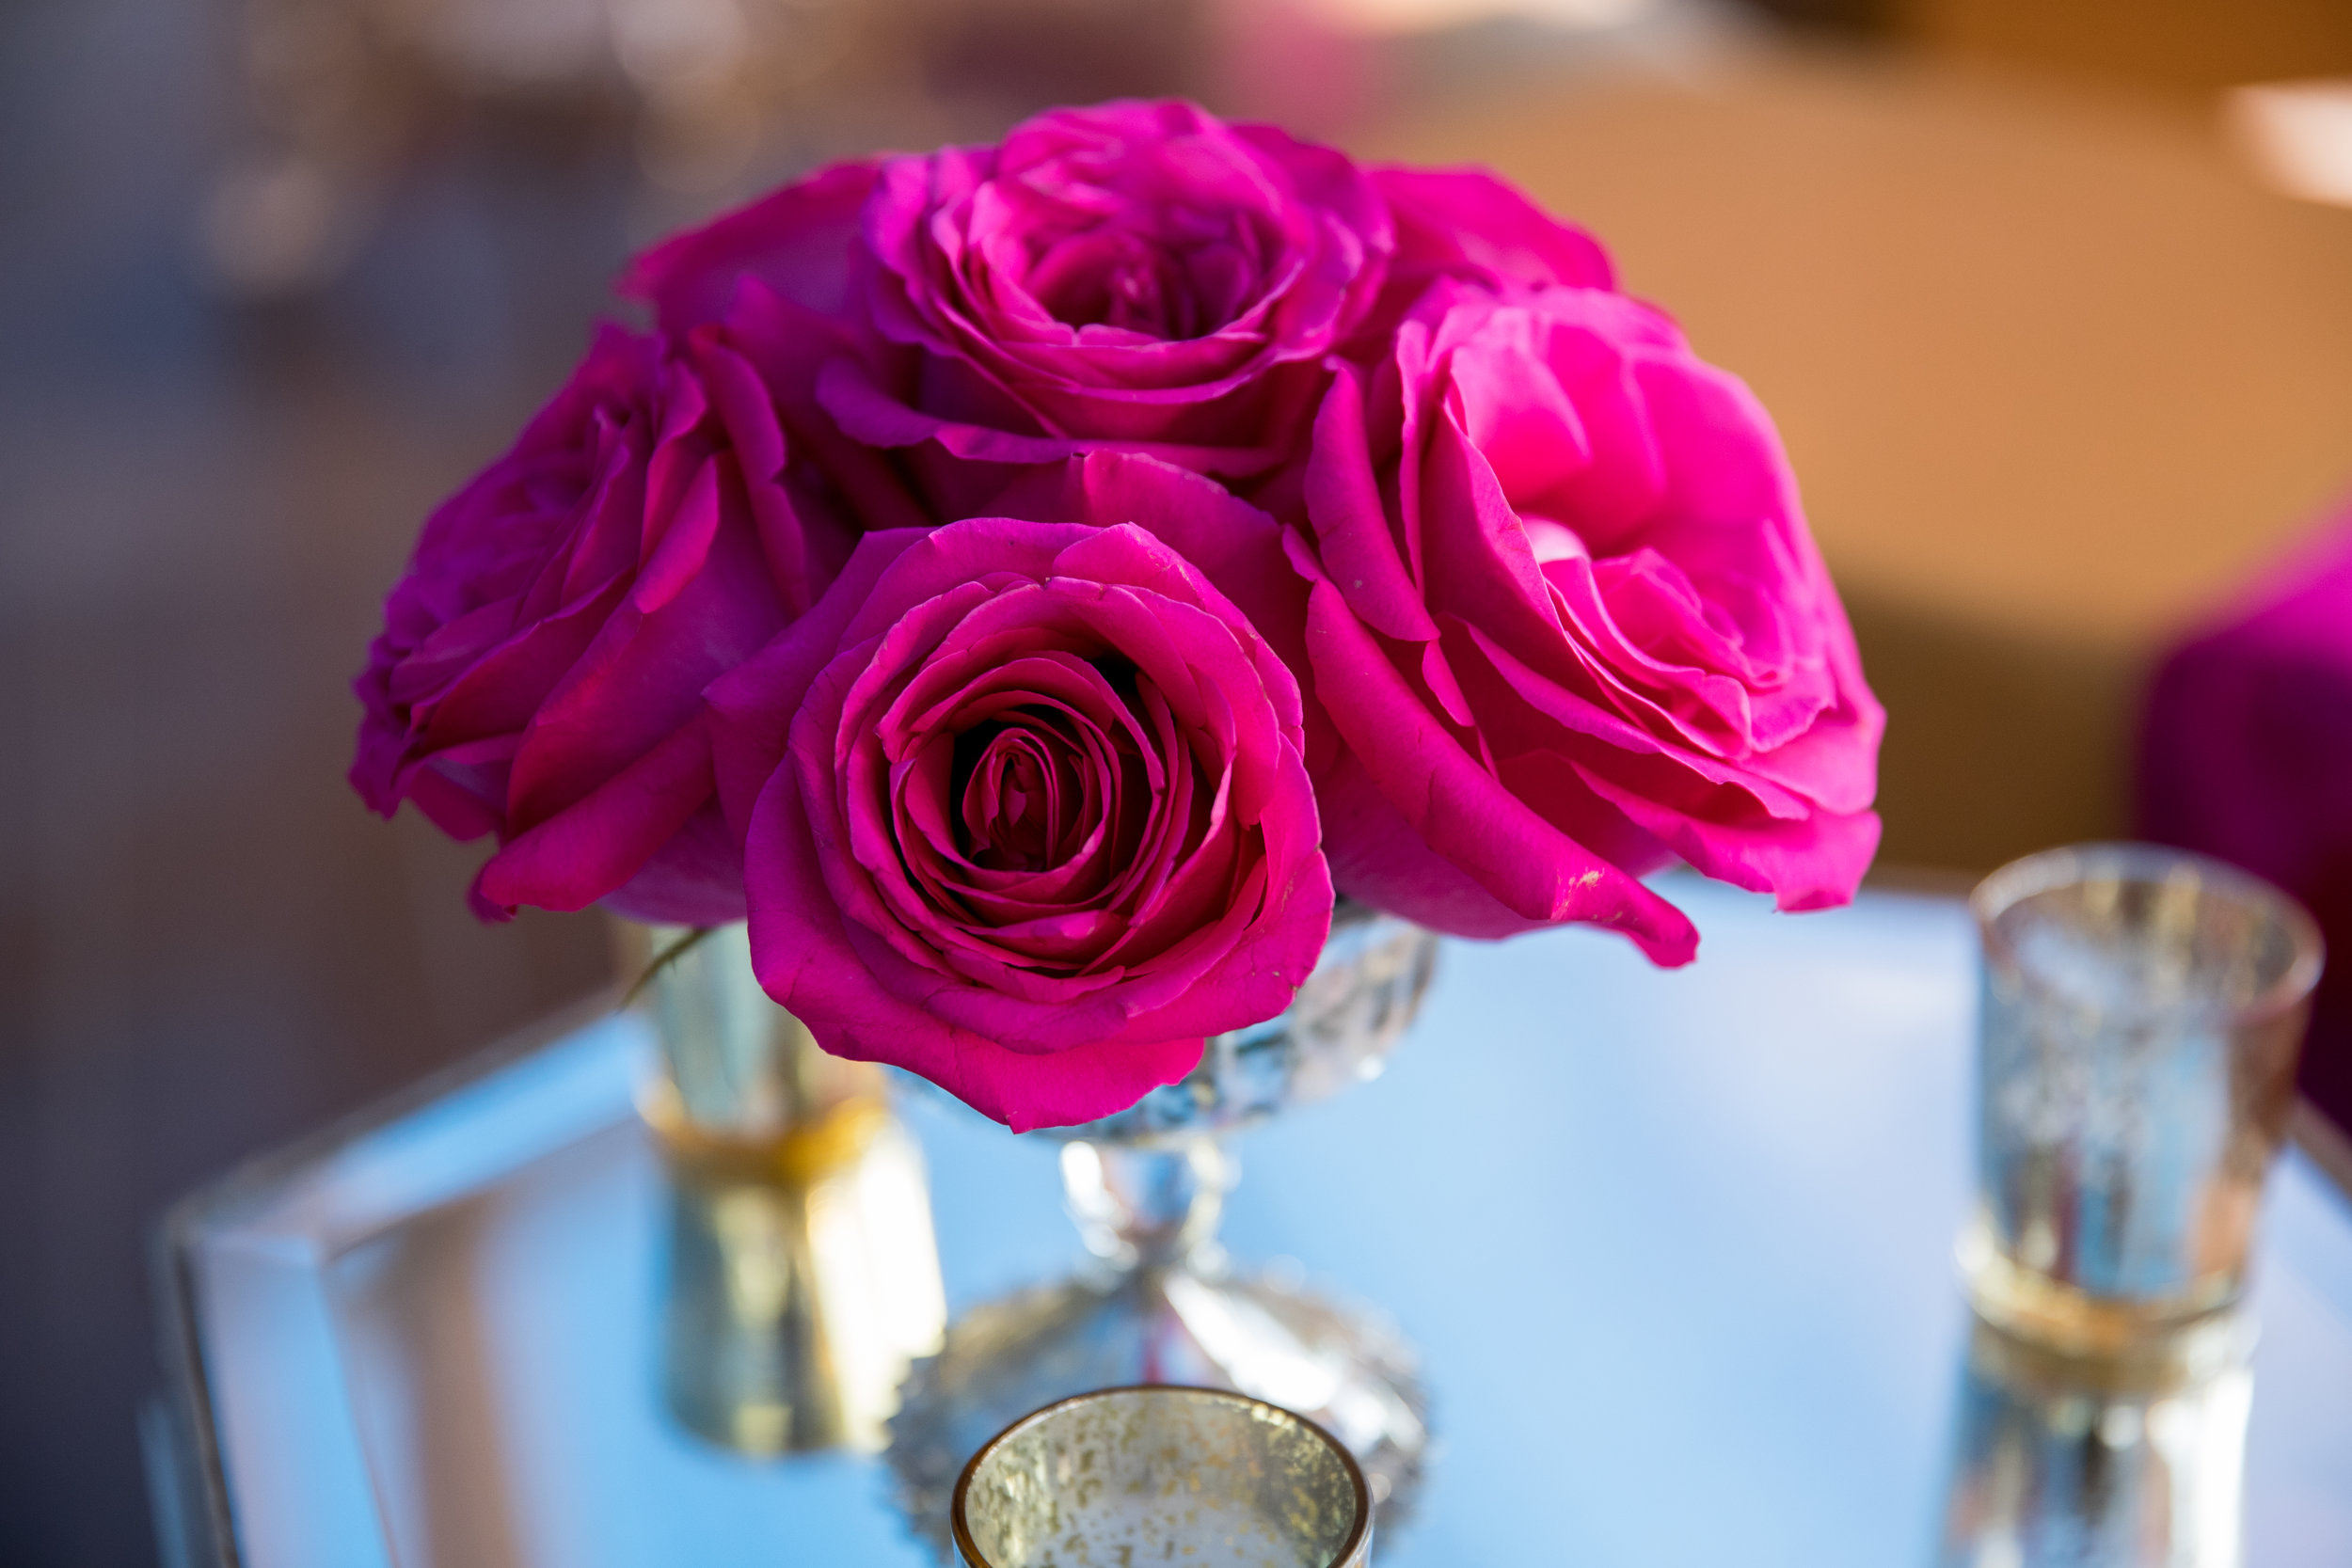 INDIAN WEDDING FLORAL ROSE VASE.jpg